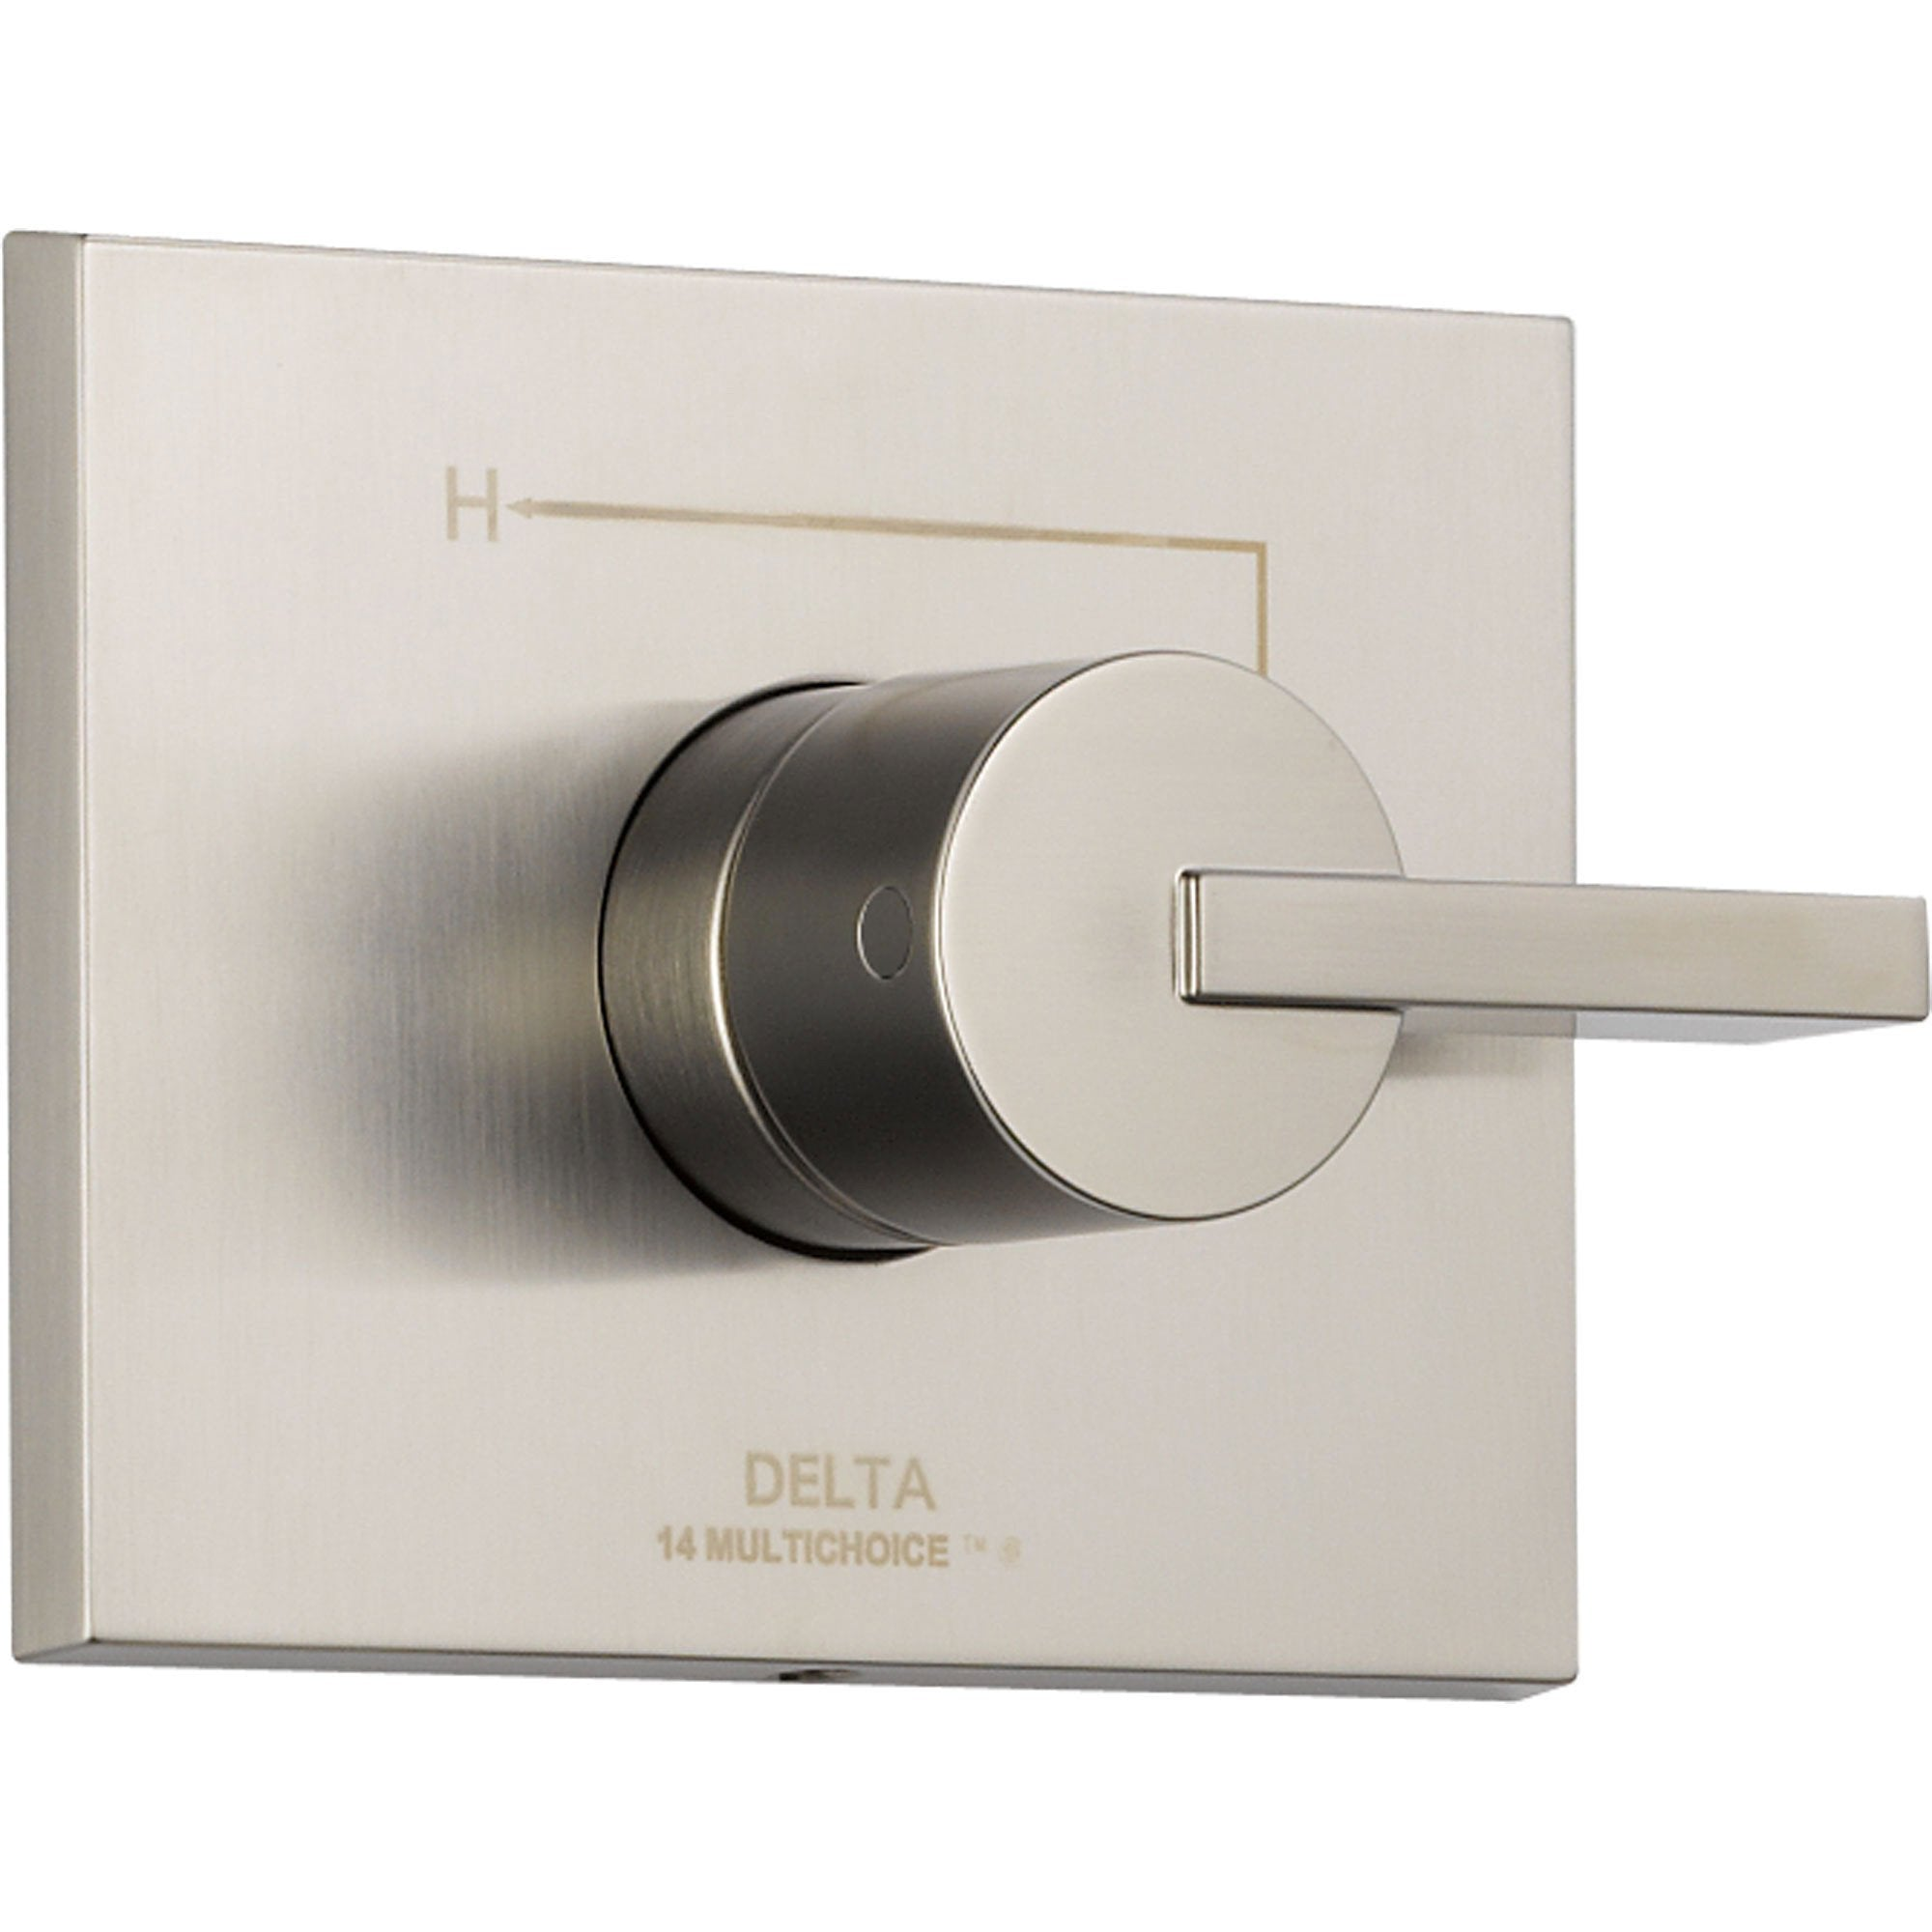 Delta Vero Stainless Steel Finish Single Handle Shower Control with Valve D056V